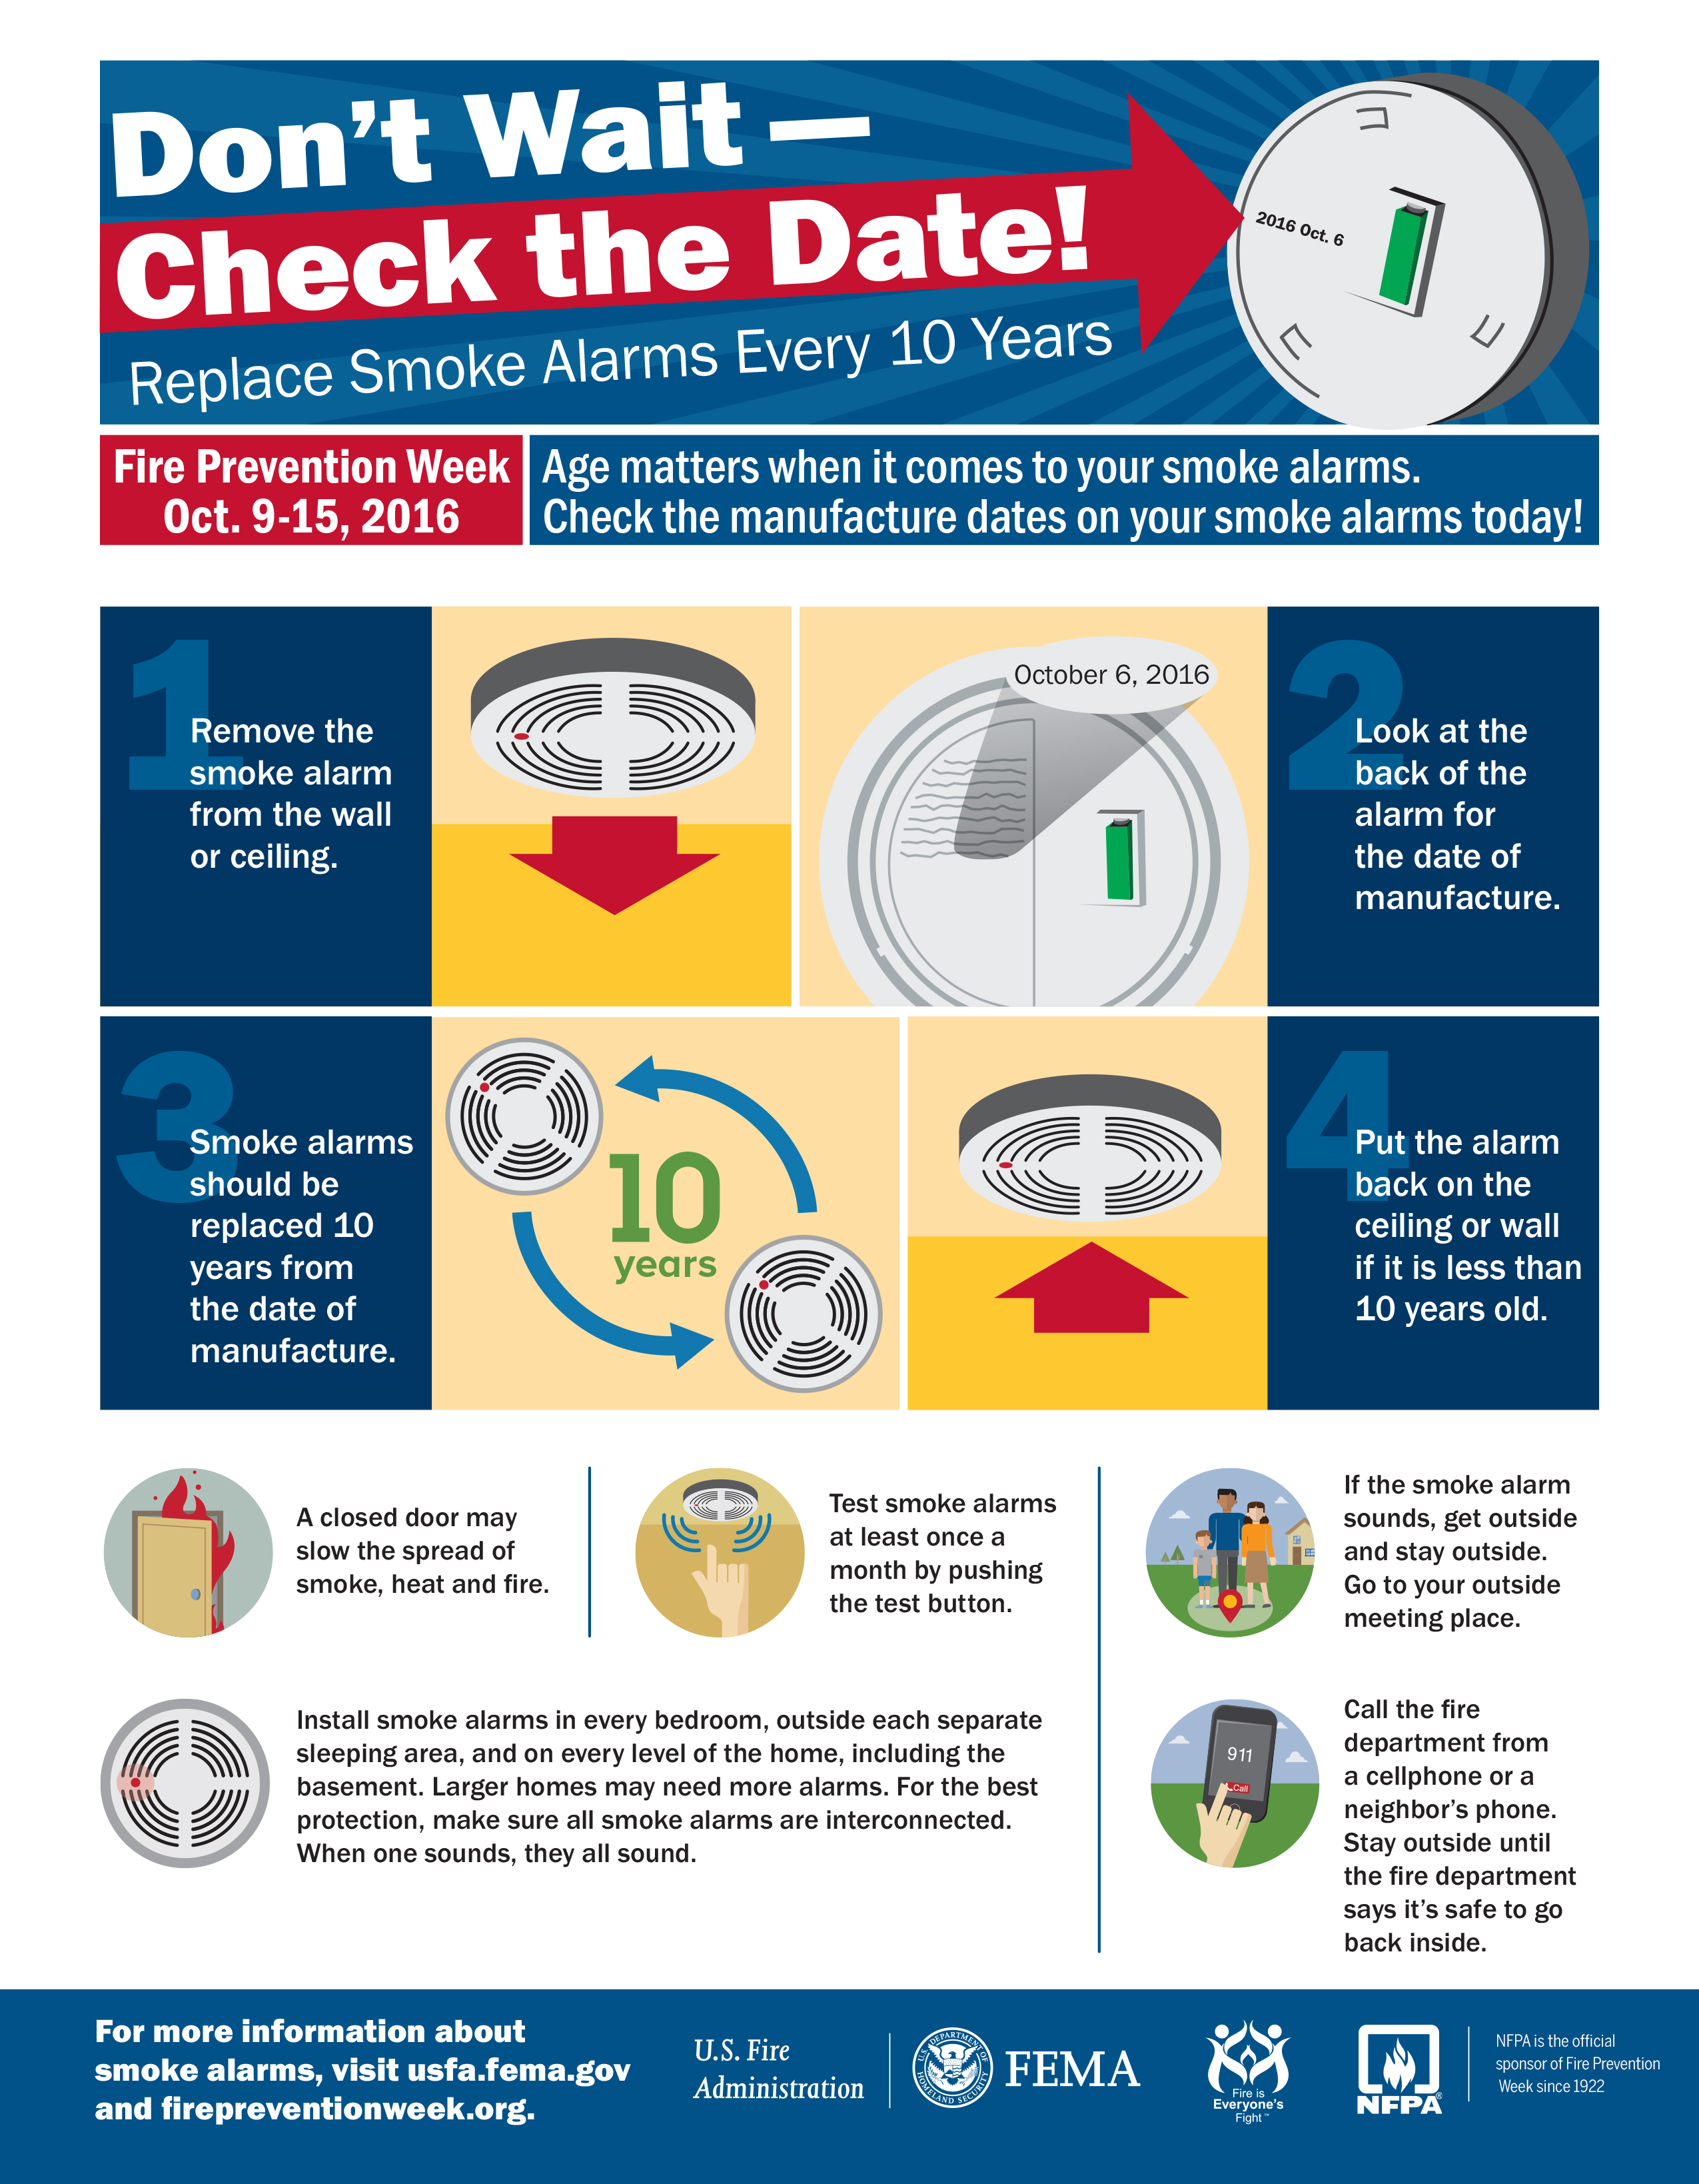 Make time to check your smoke alarm urges fire service